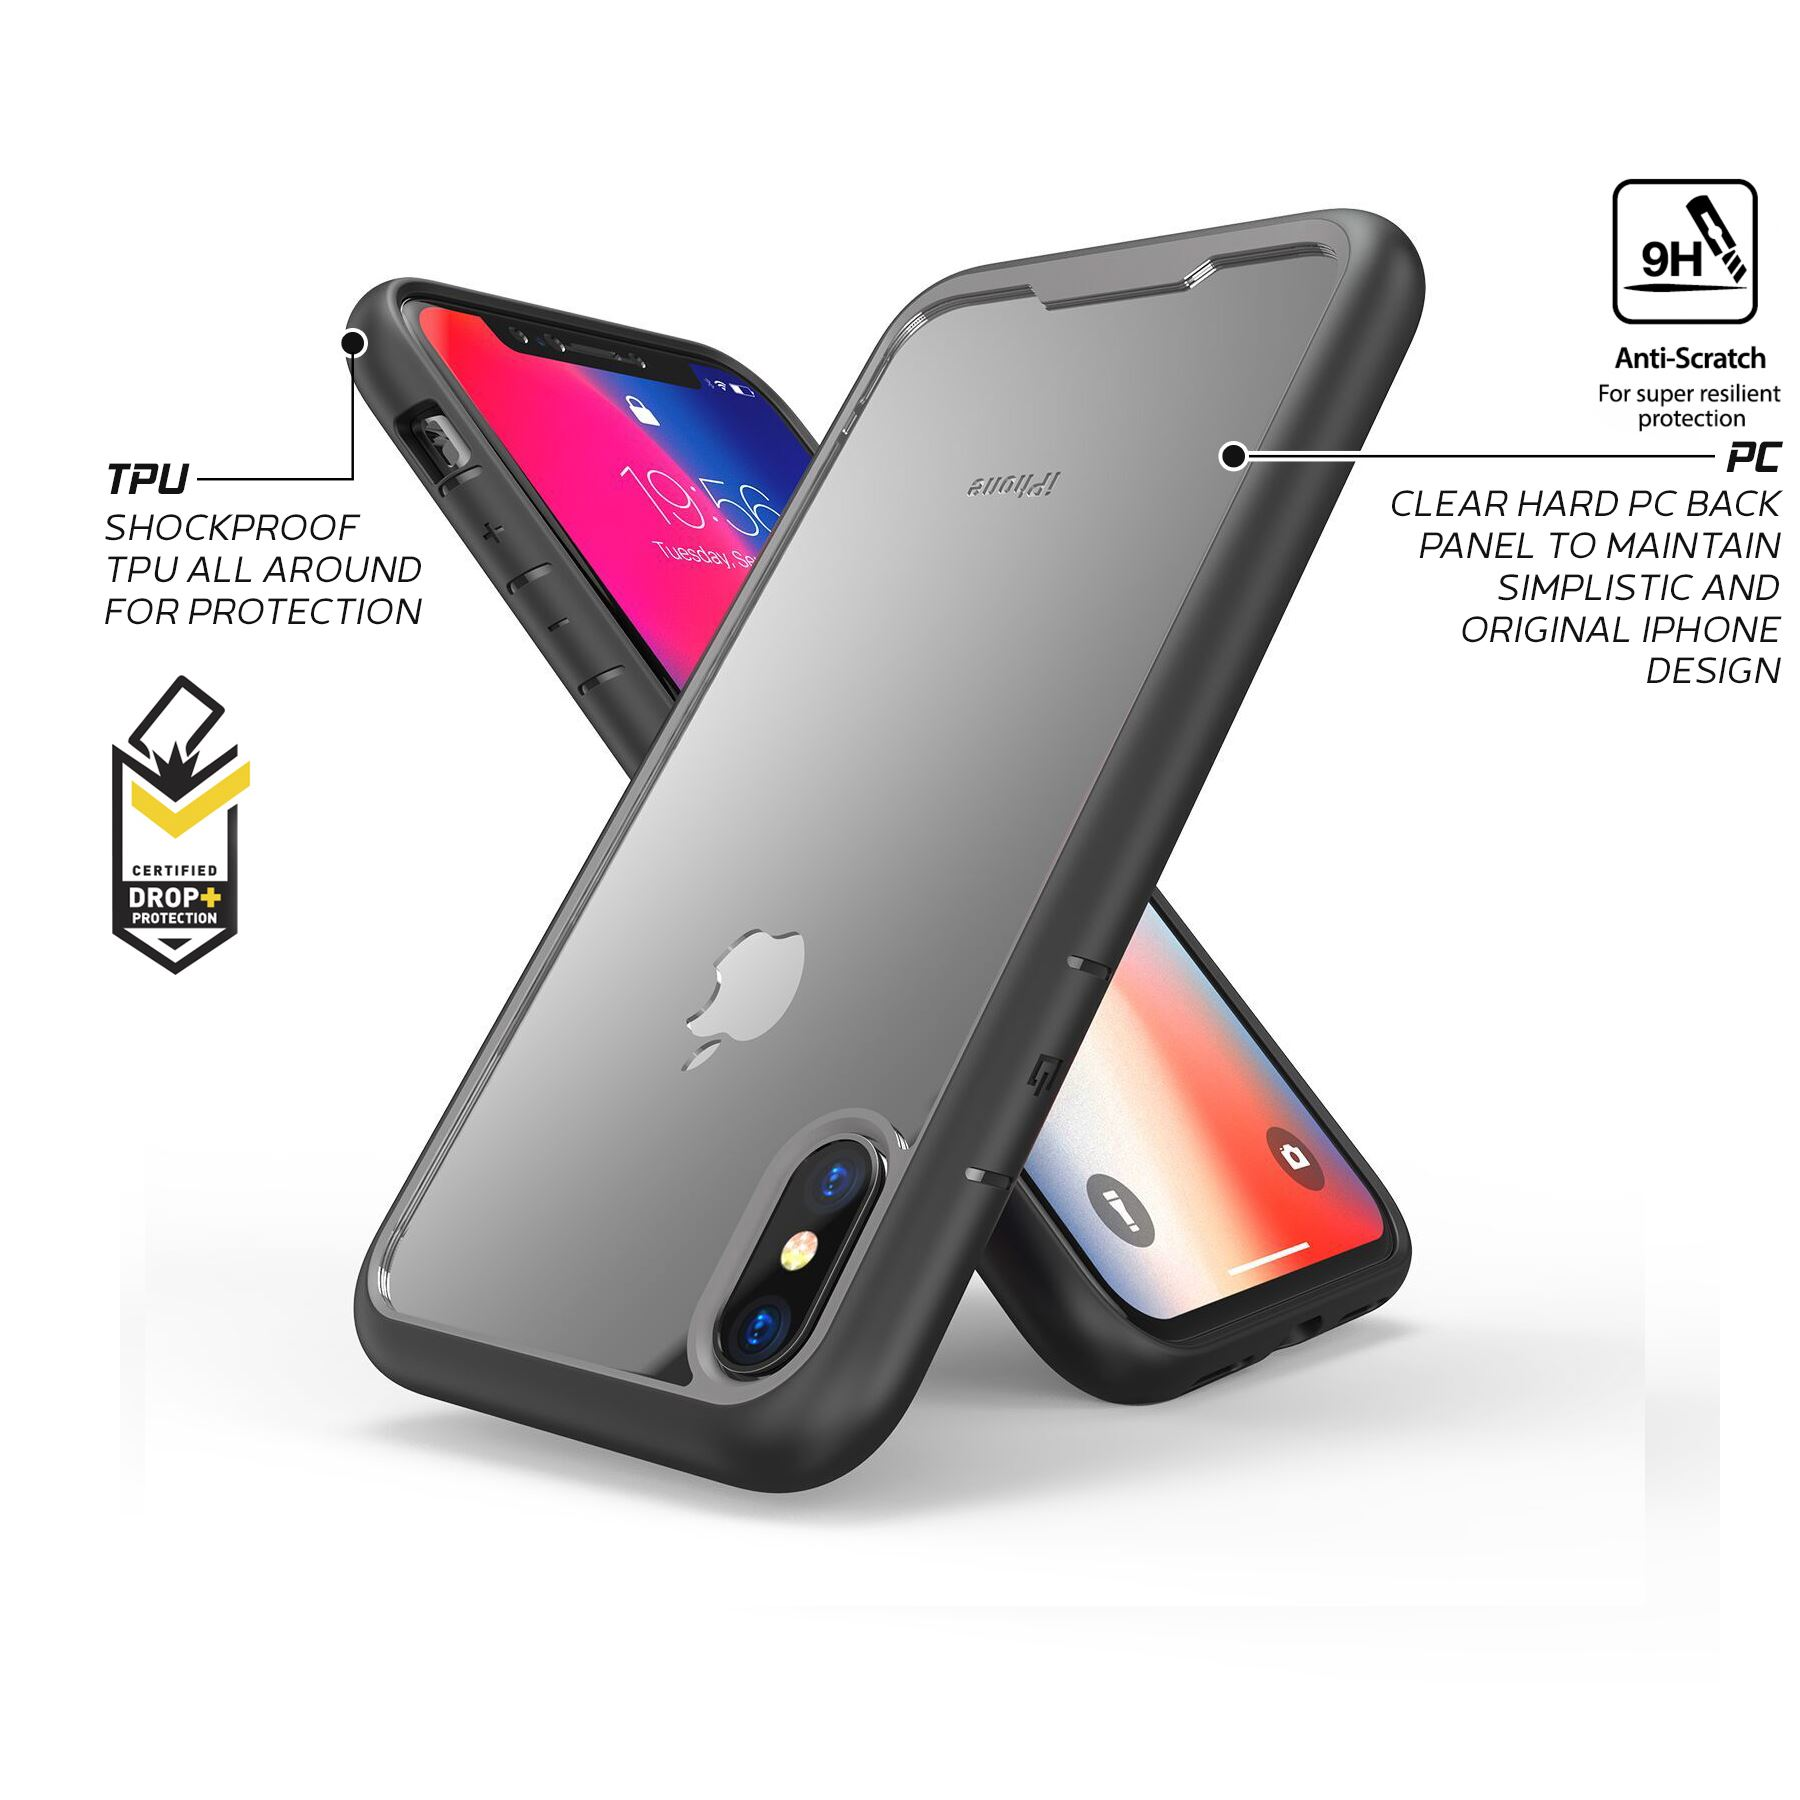 thumbnail 27 - For Apple iPhone XR Xs Max X 8 7 Plus 6 Se 2020 Case Cover Clear Shockproof Thin